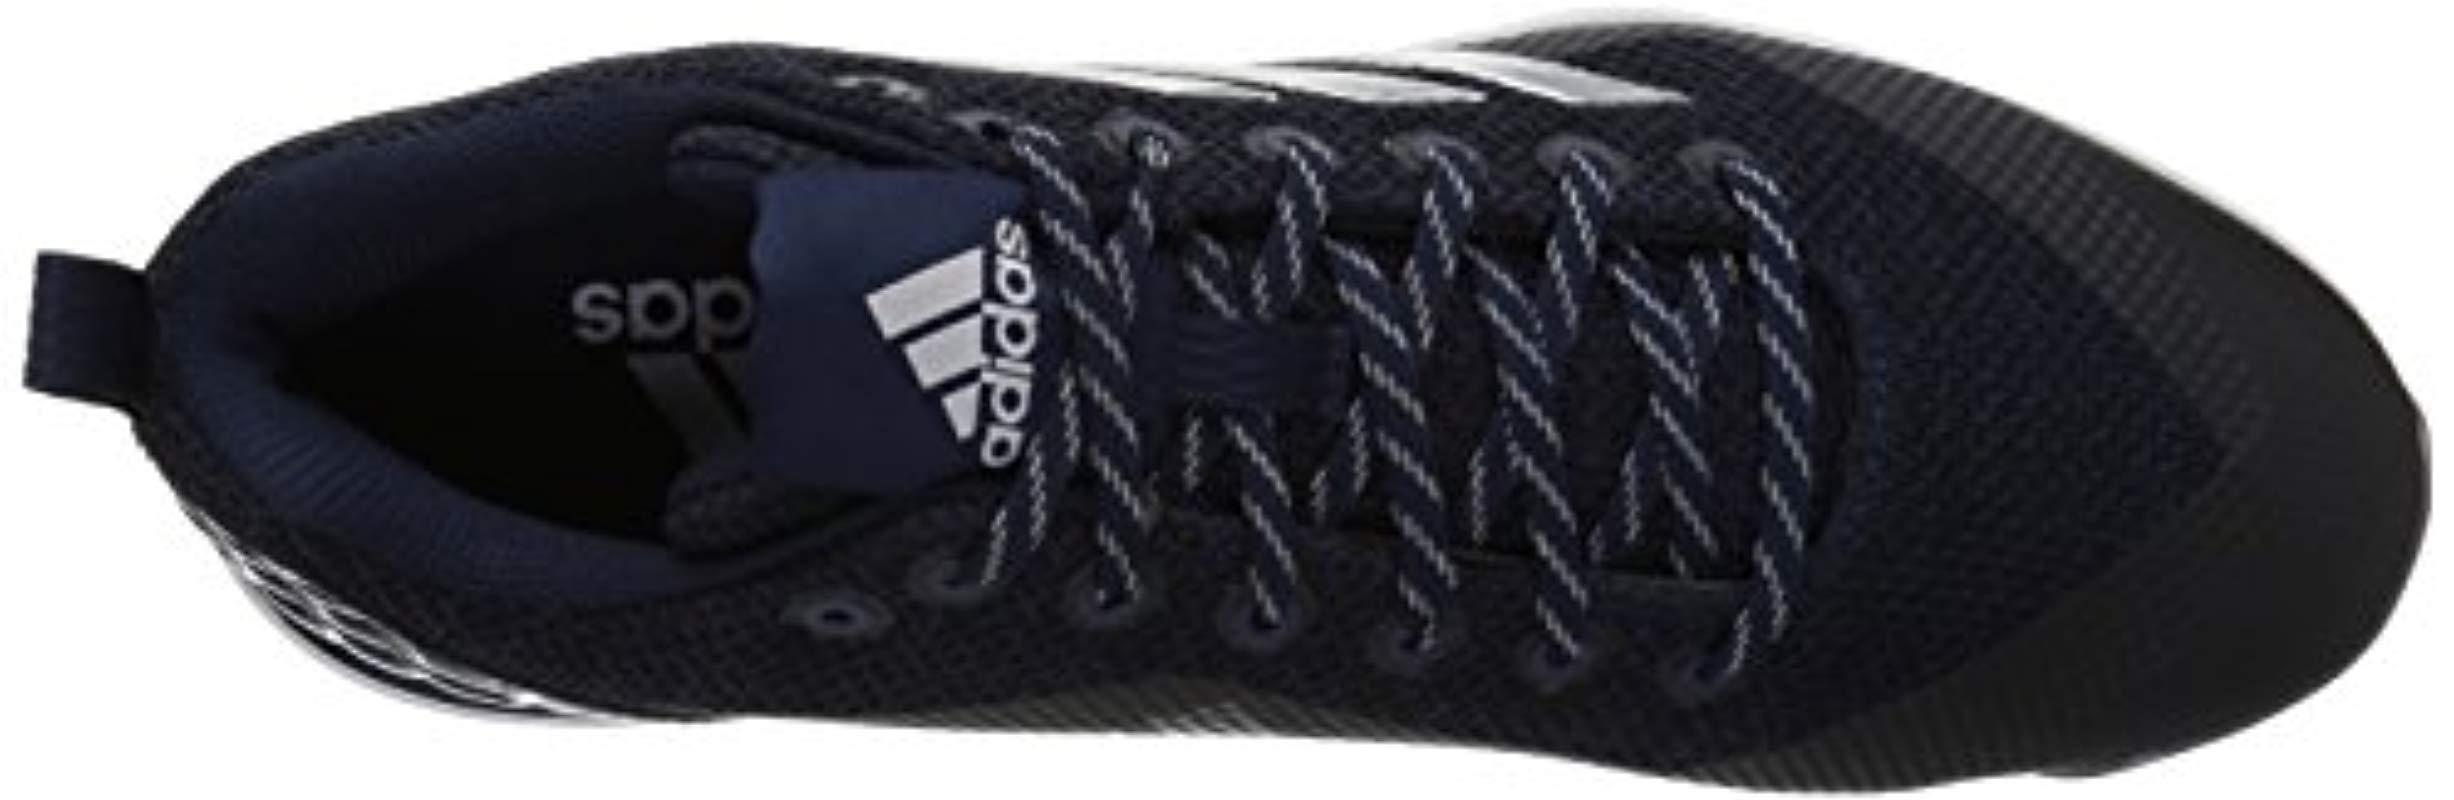 adidas S Poweralley 5 Fabric Low Top Lace Up Baseball Shoes in Blue for Men